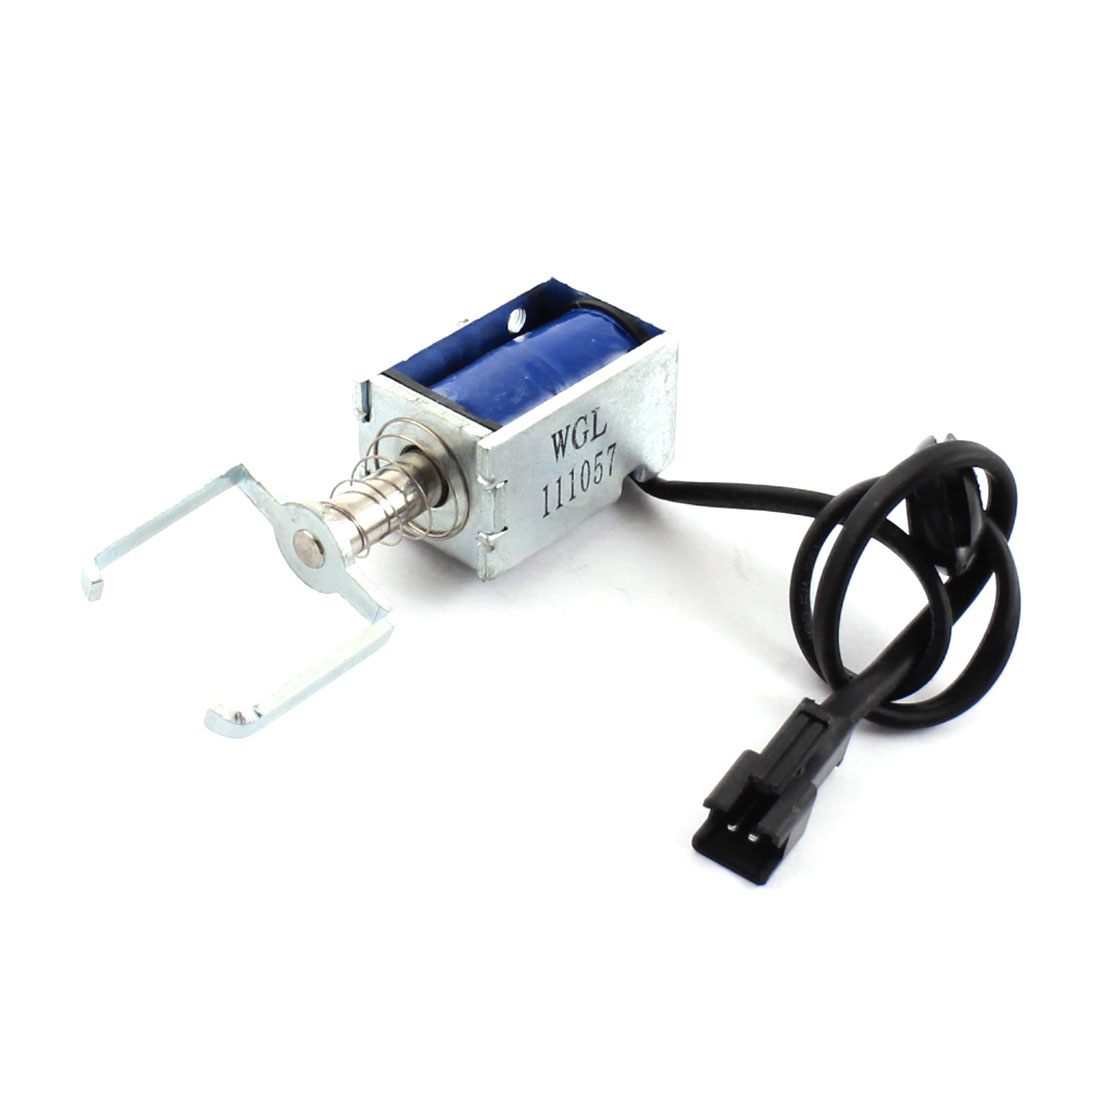 DC 6V 0.46A 2.81W 3mm 50g Open Frame Spring Plunger Linear Motion Pull Type Solenoid Electromagnet Actuator w Male JST SM 2Pin Connector